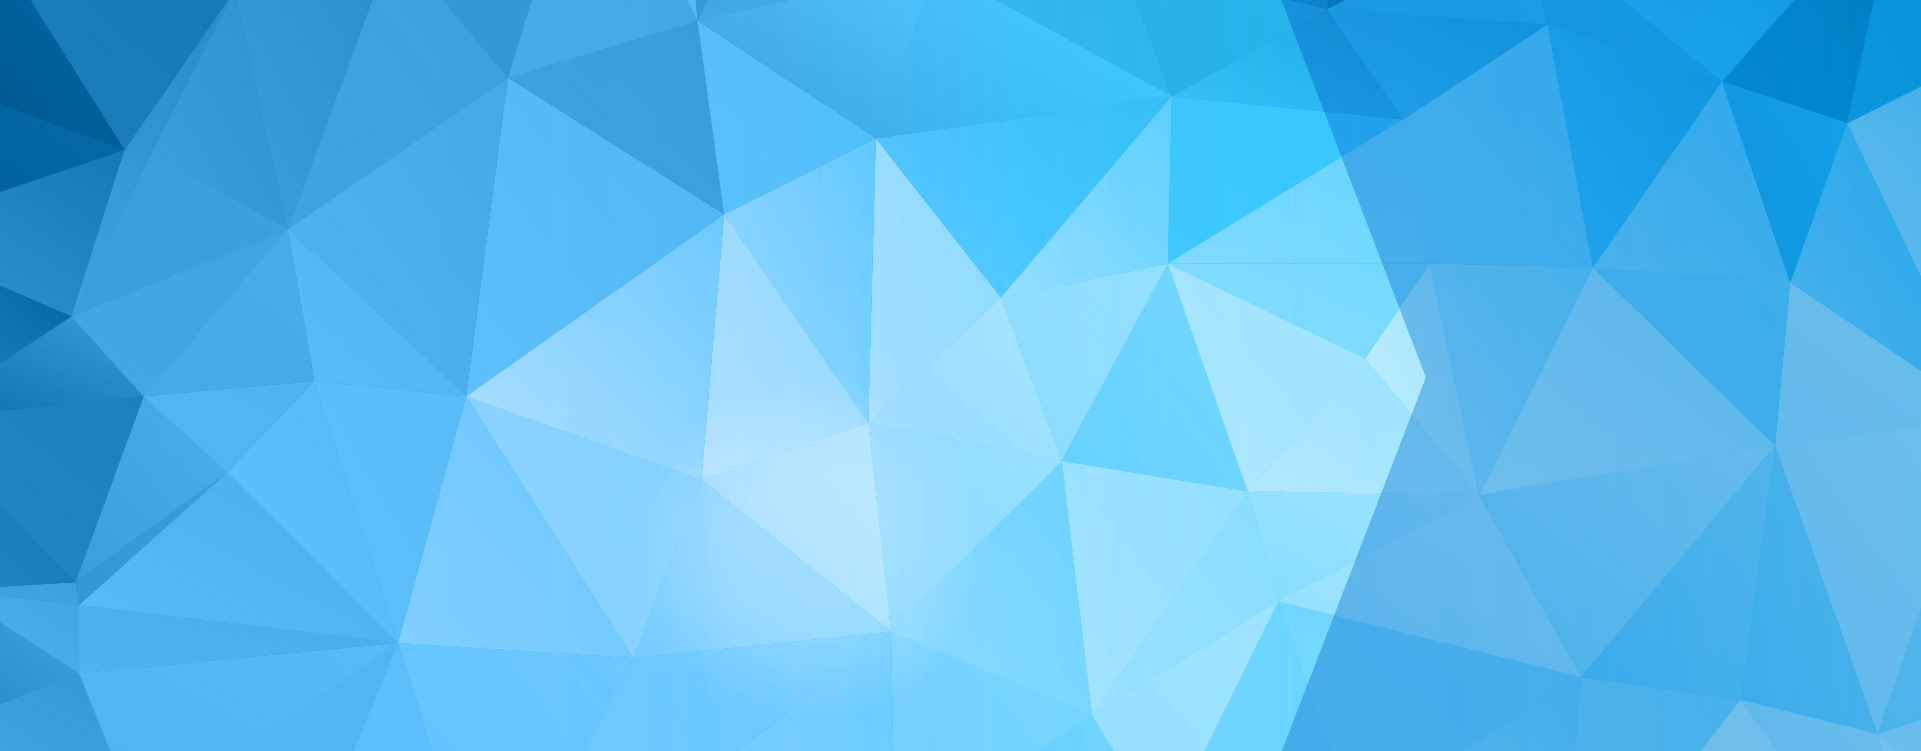 Fall Heart Leaves Background Wallpaper Bright Blue Geometric Background Geometry Poster Banner